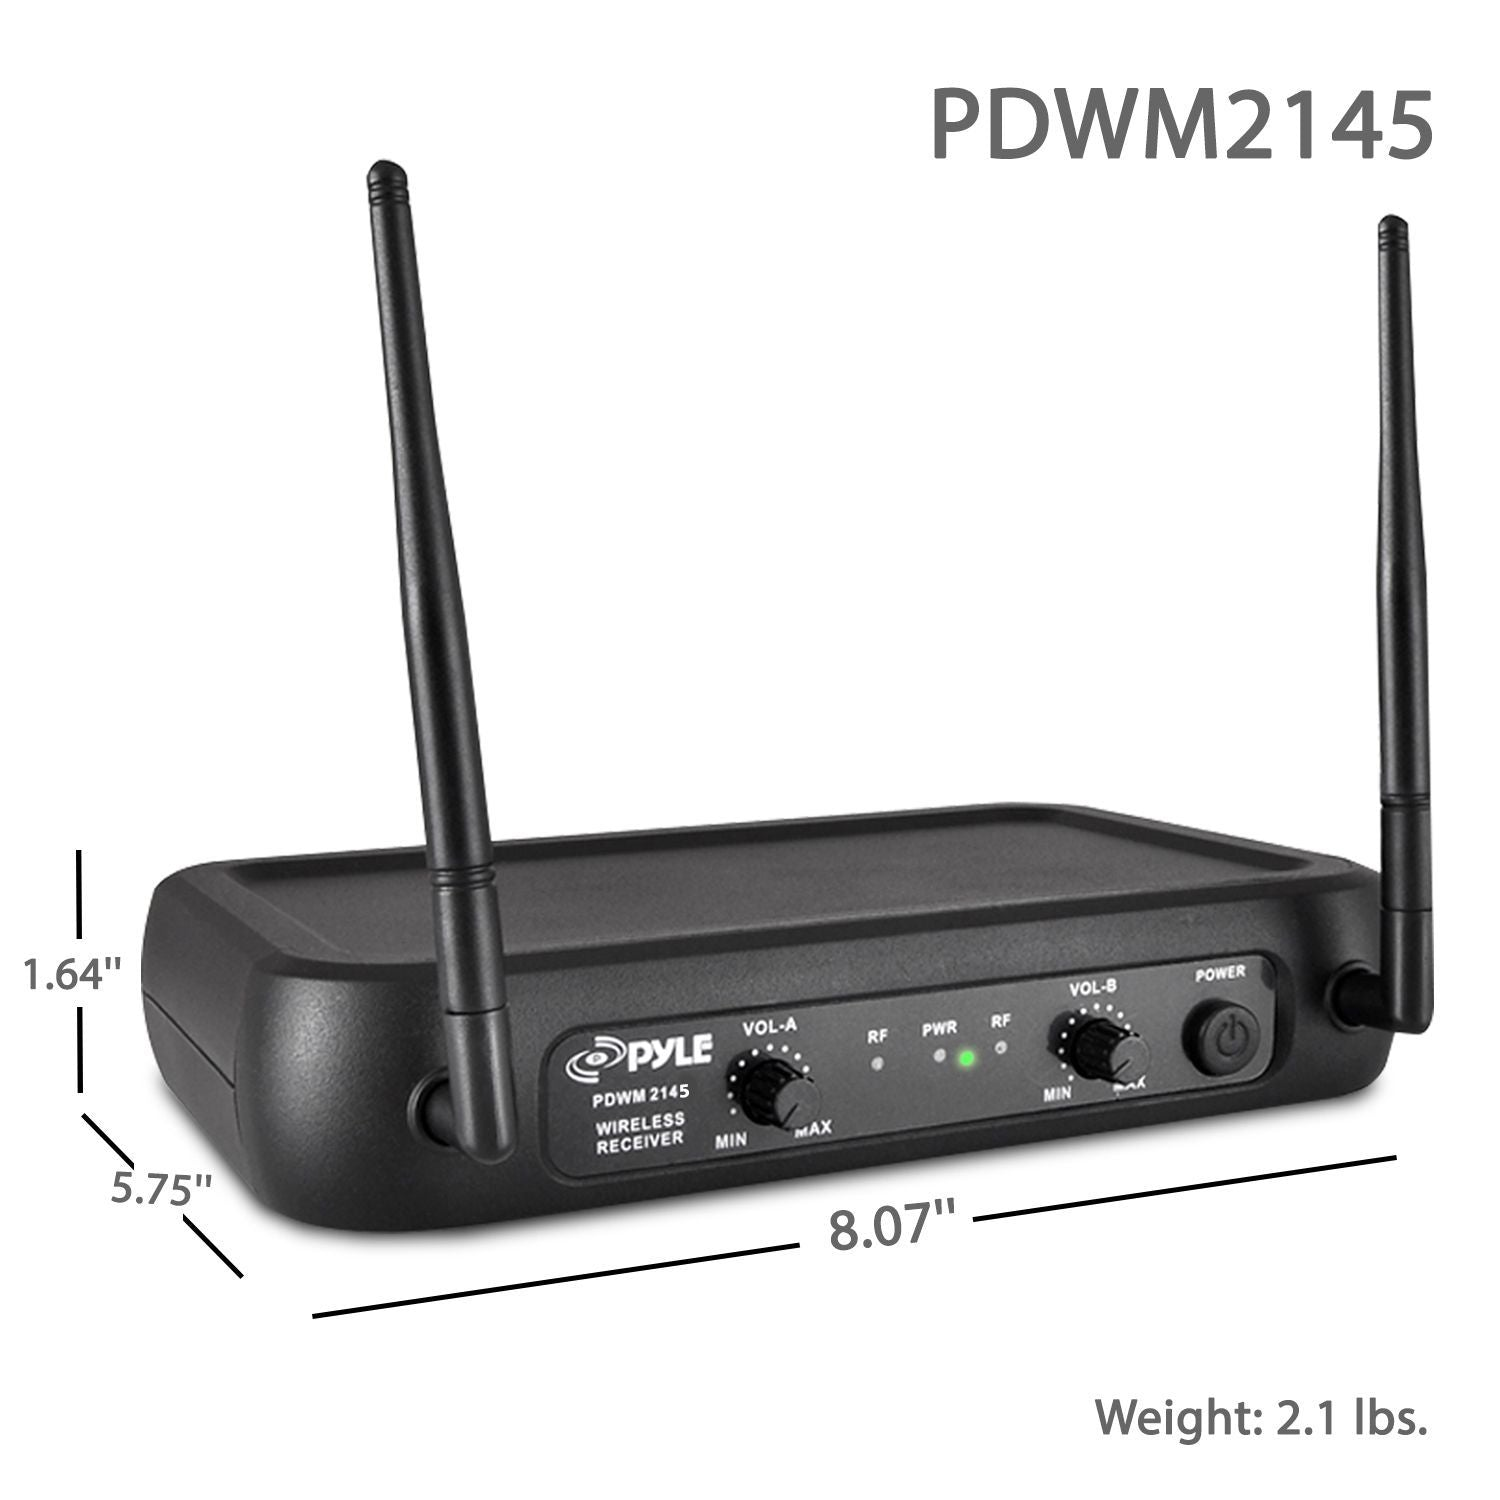 Pyle Wireless Microphone System, VHF Fixed Frequency, 2 Body-Pack Transmitters, 2 Lavalier Mics, 2 Headset Mics (PDWM2145)